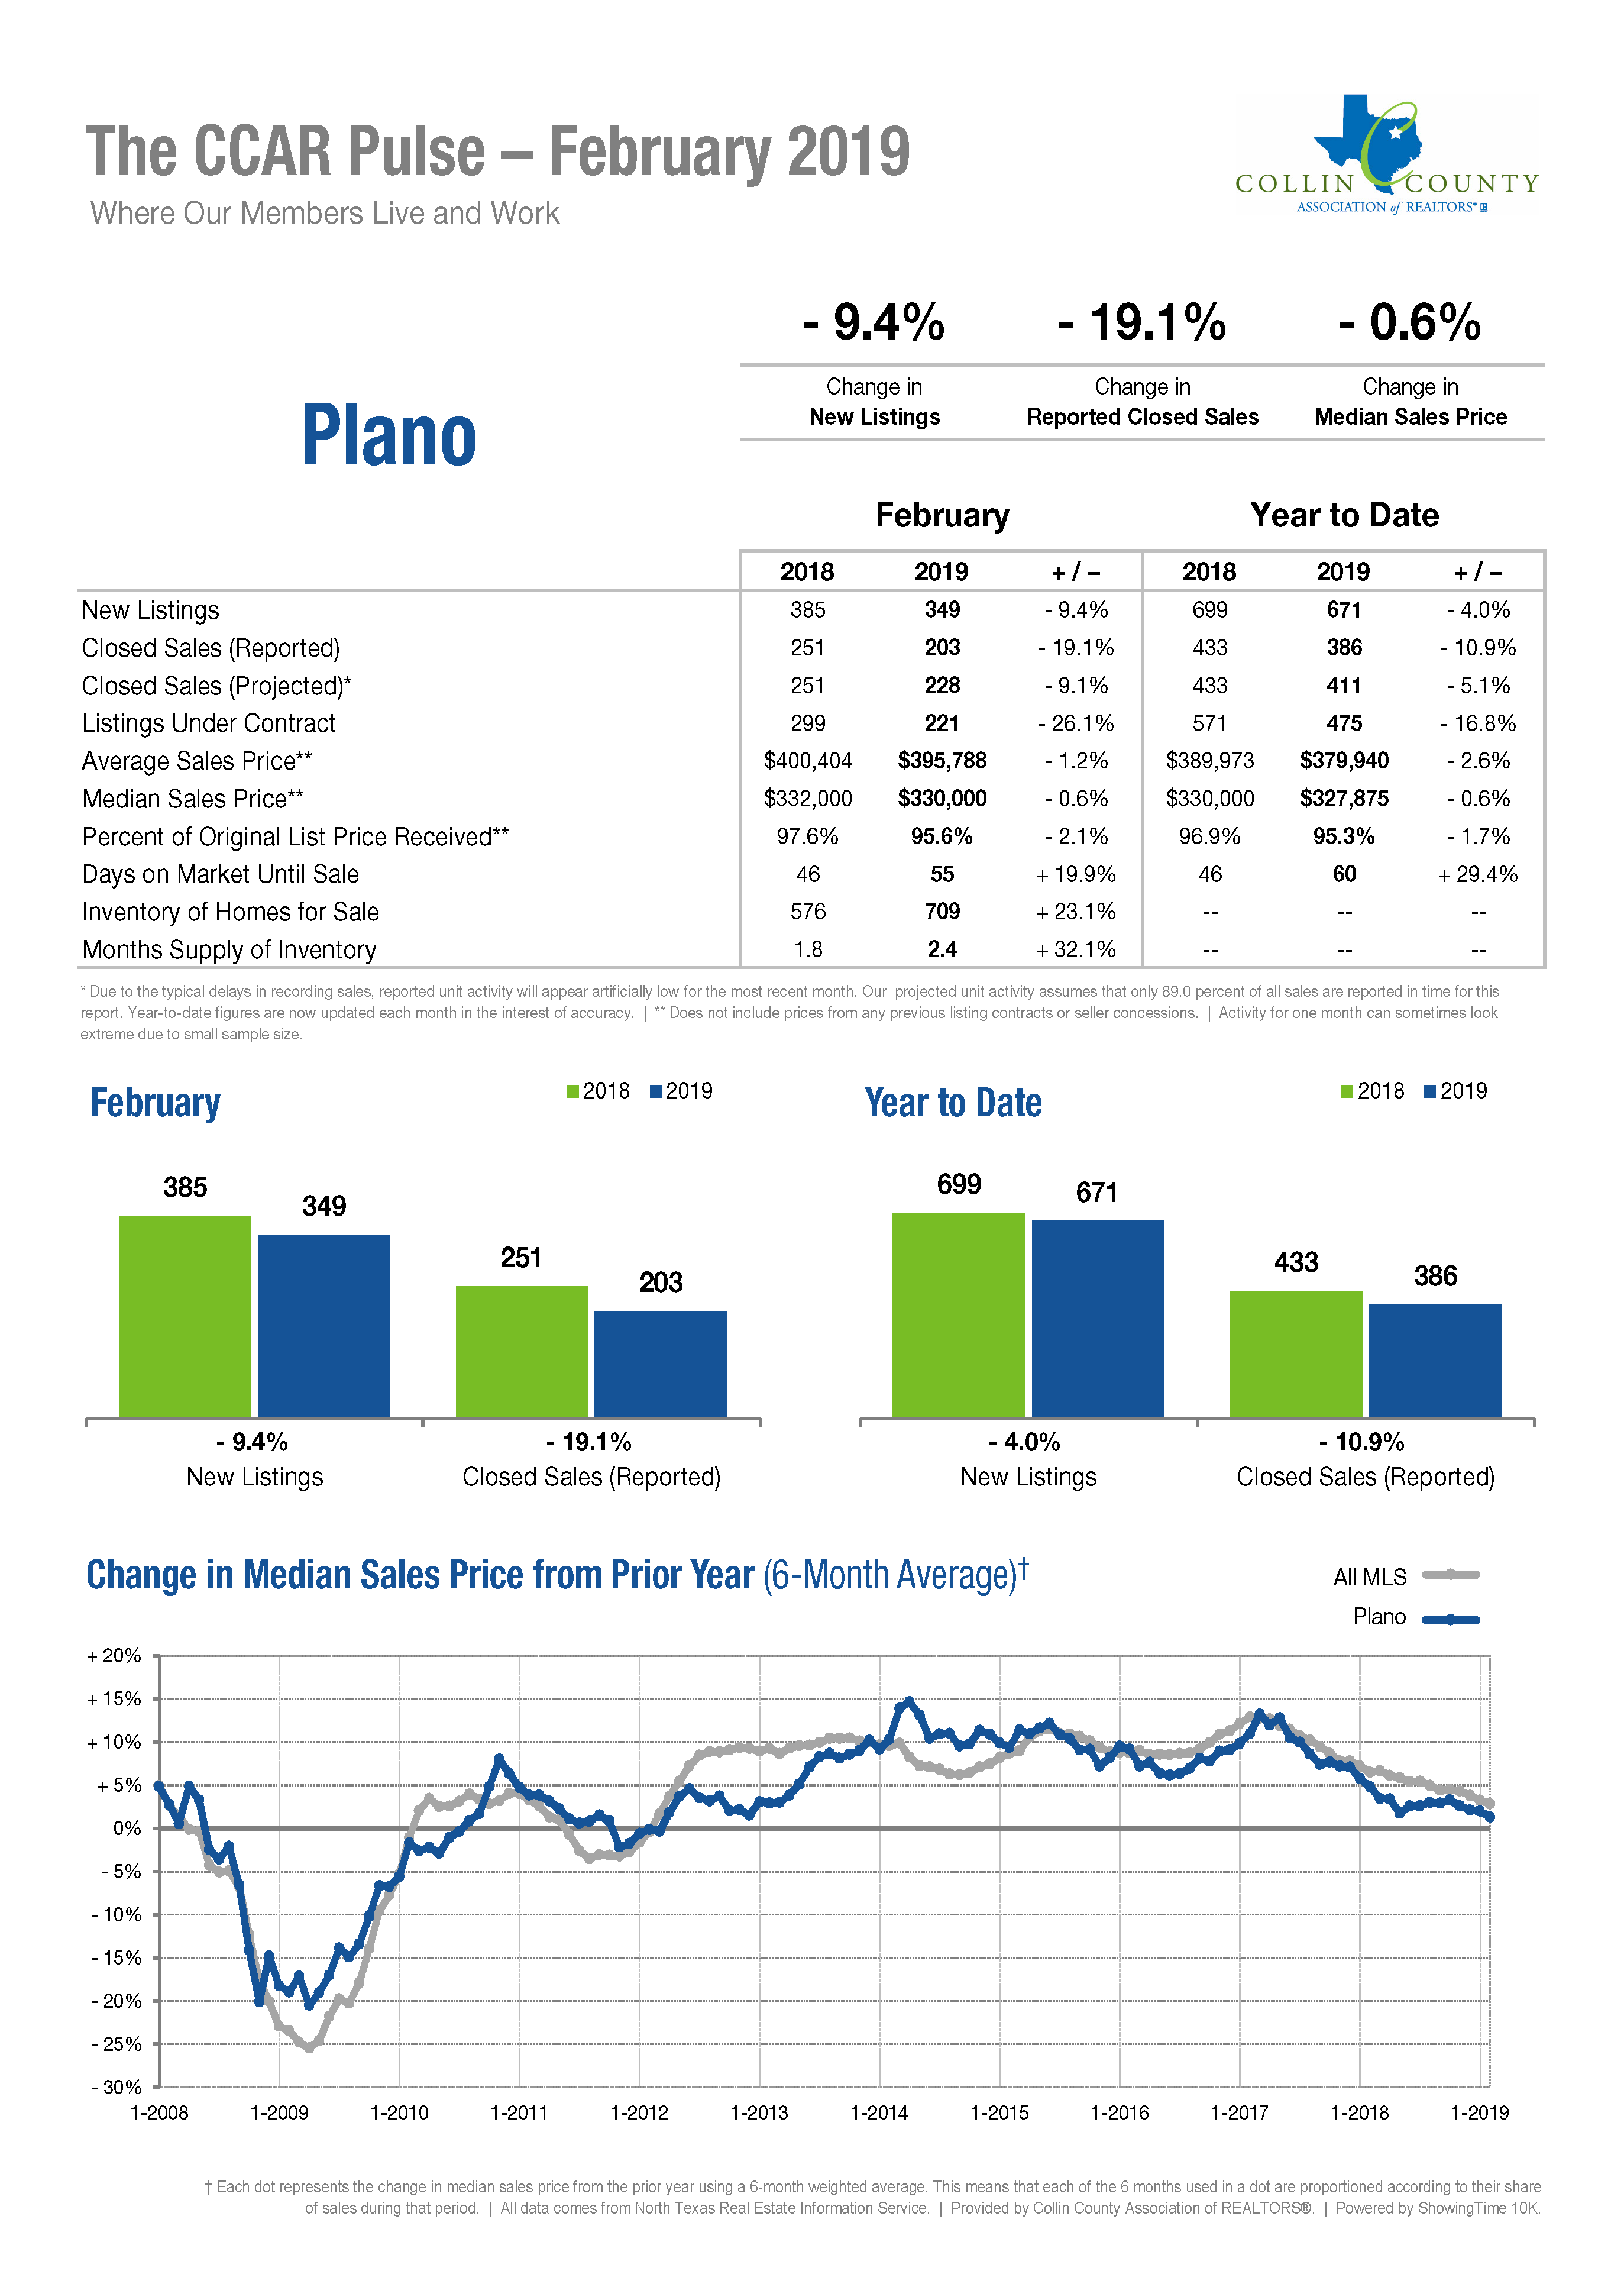 Plano Real Estate Market Statistics - February 2019